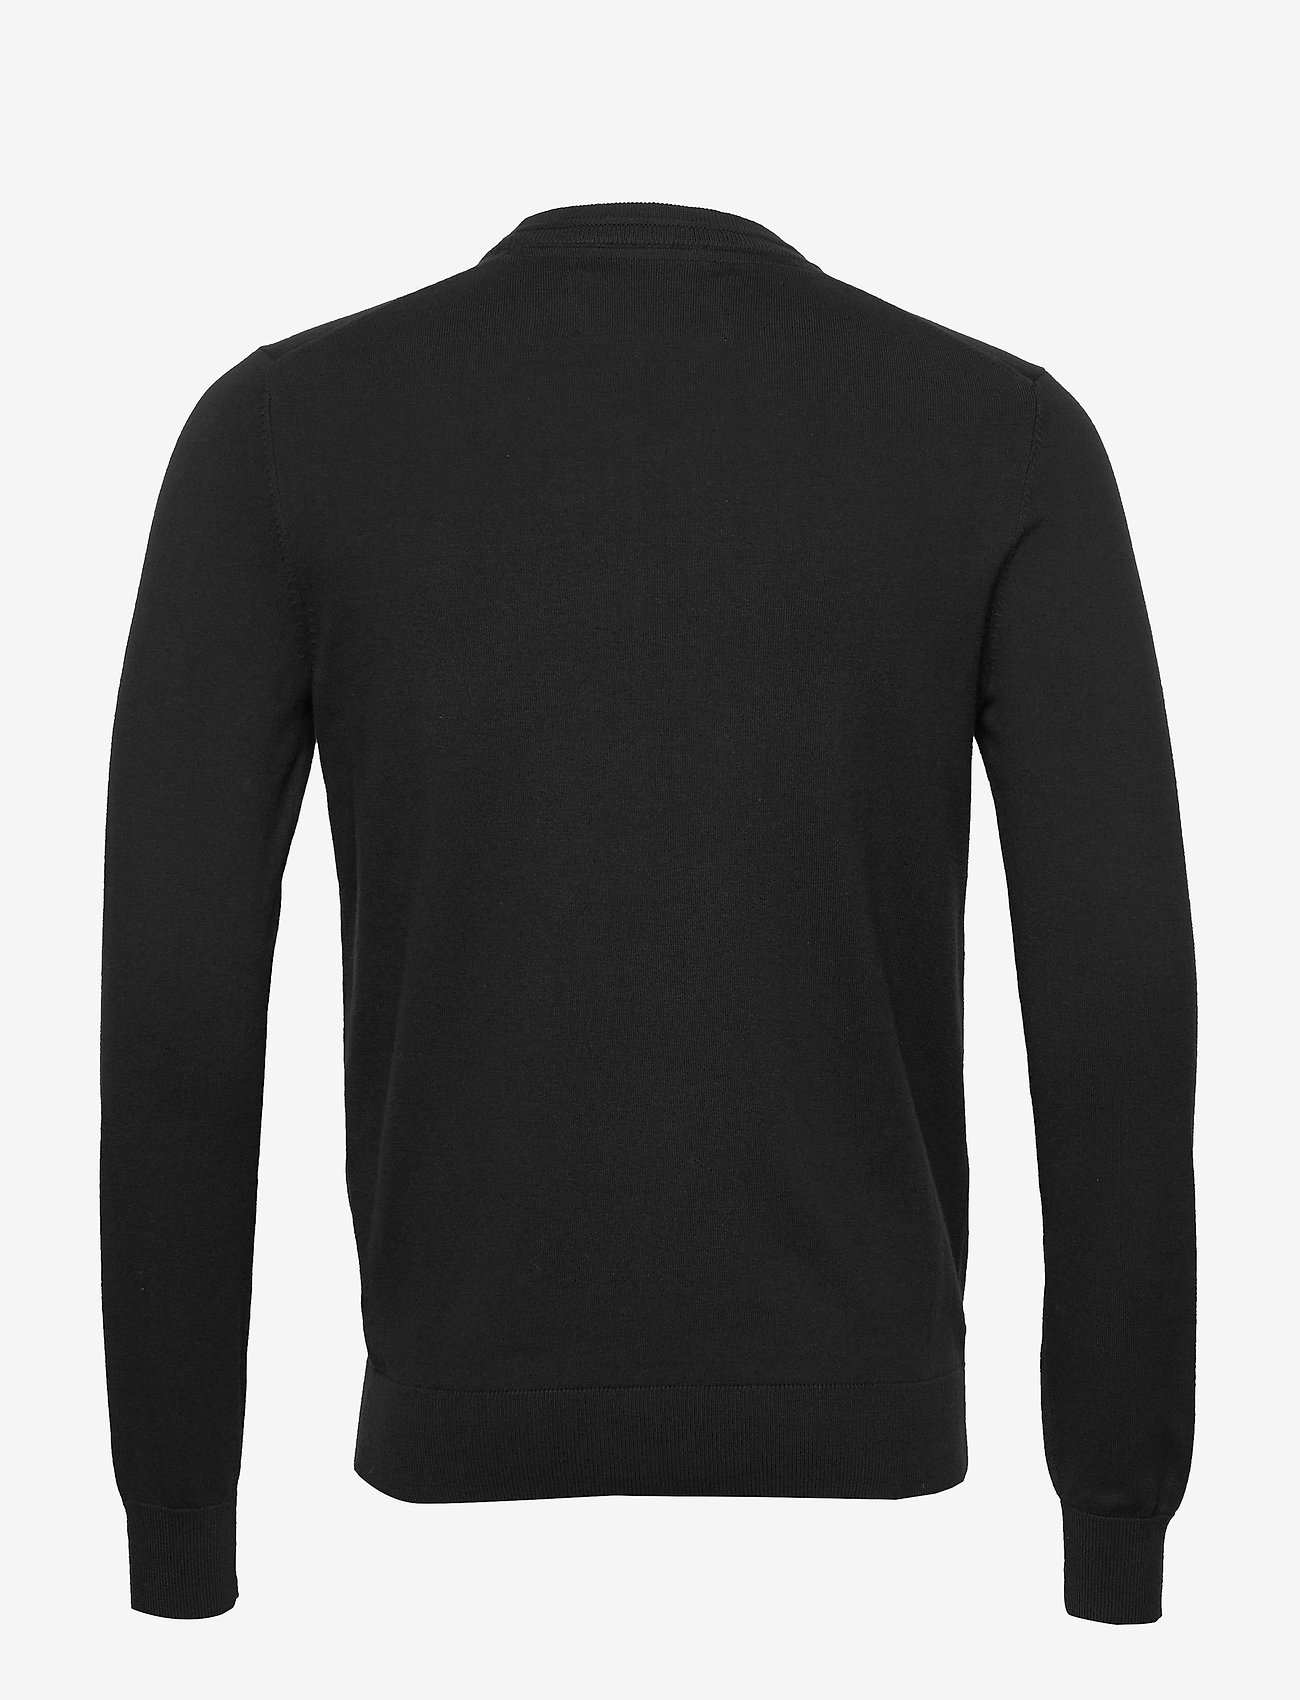 Essential Crew Neck Sweater (Ck Black) - Calvin Klein Jeans E7bjbI